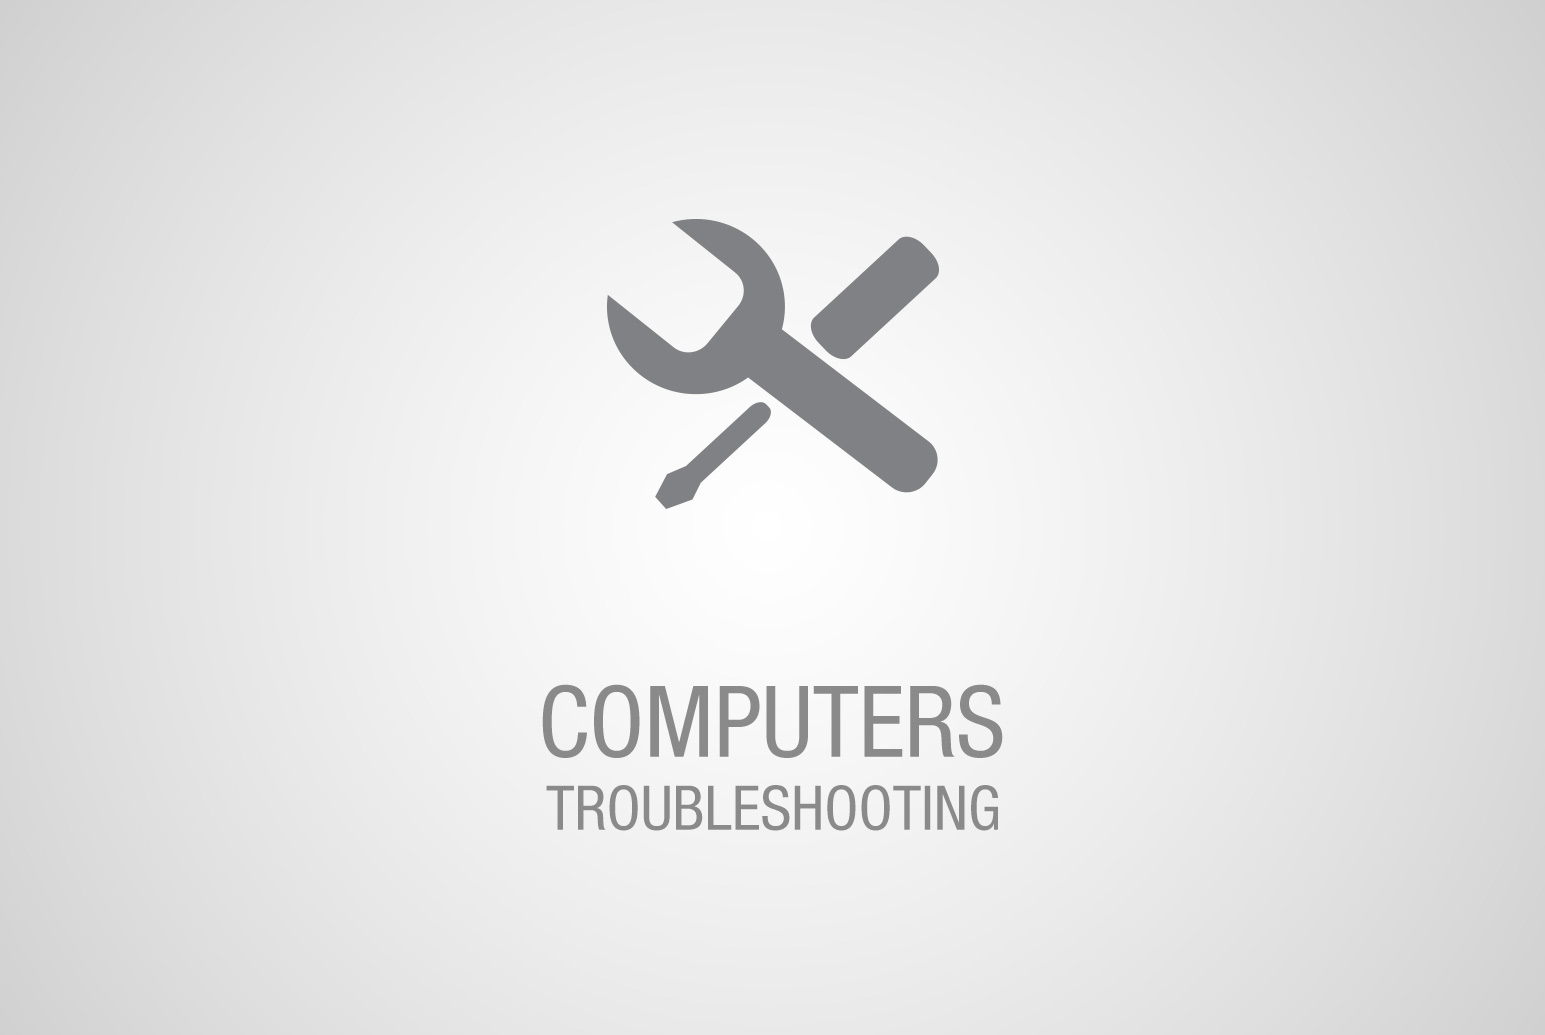 Macintosh & PC Troubleshooting, Windows, Mac OS, Linux, Networking, Server (Windows, Mac OS or Linux)